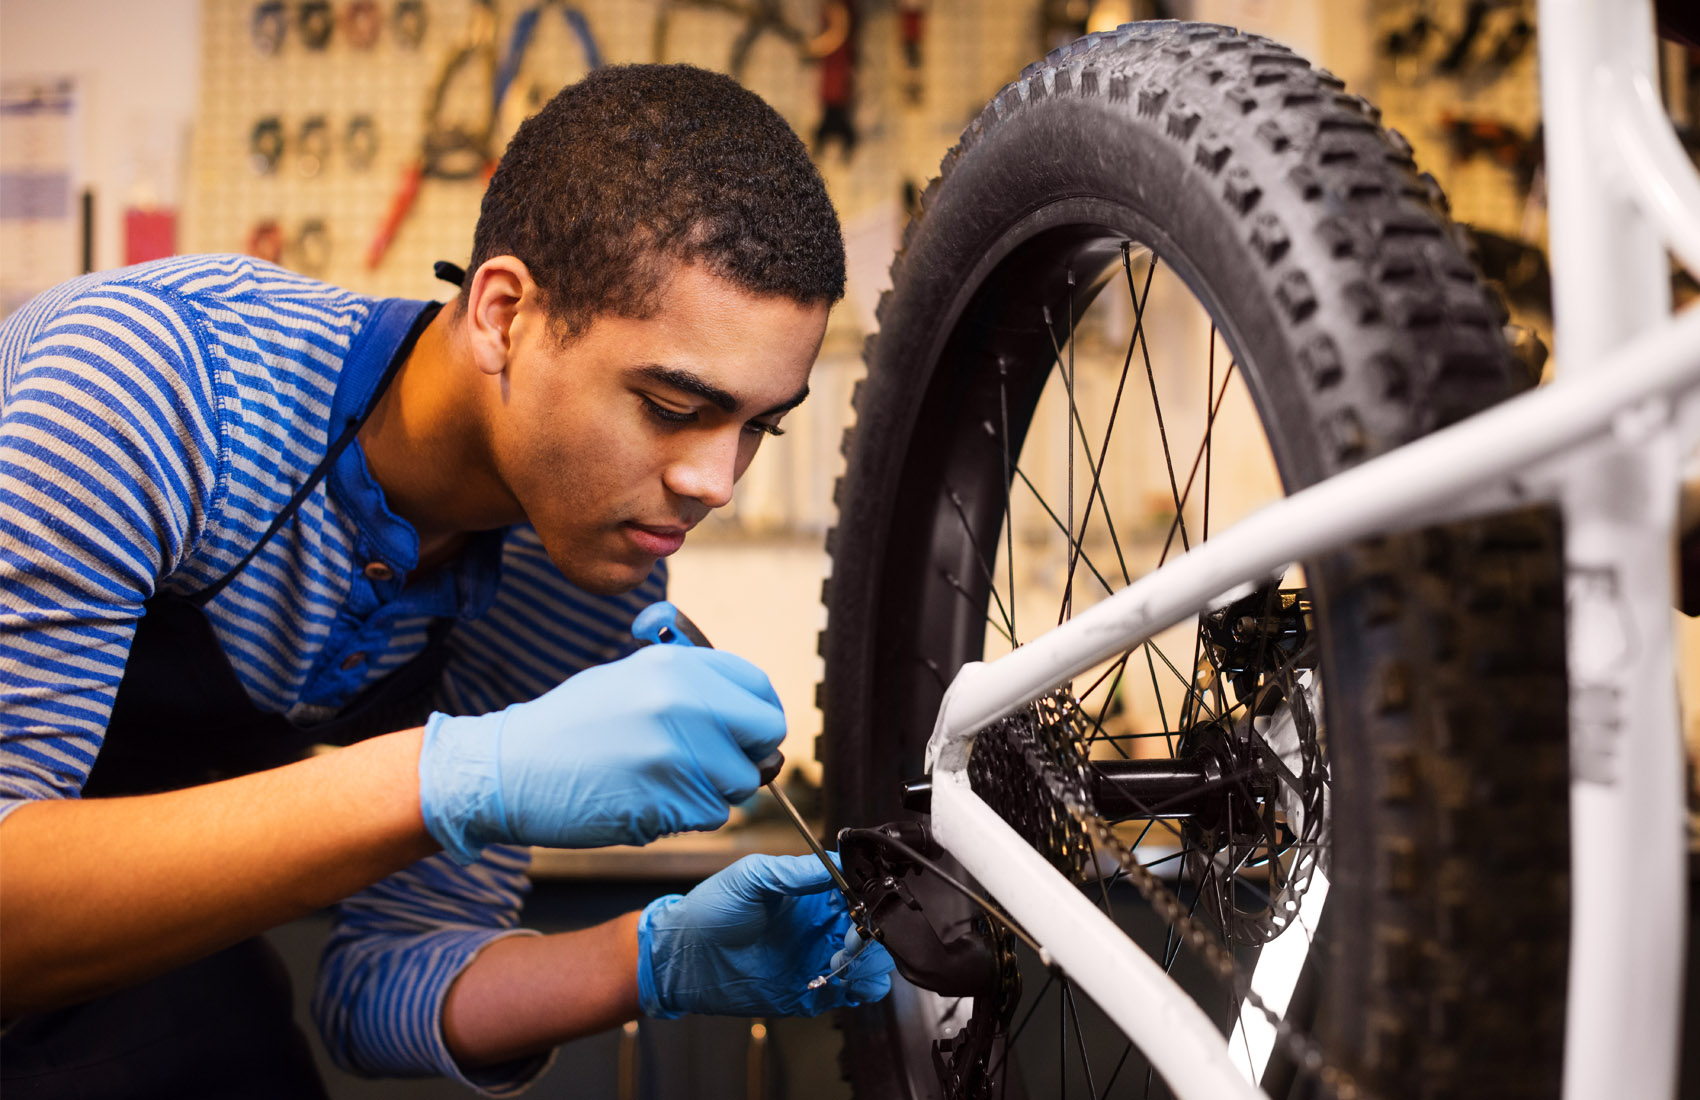 Young African American man fixing a bicycle at a repair shop